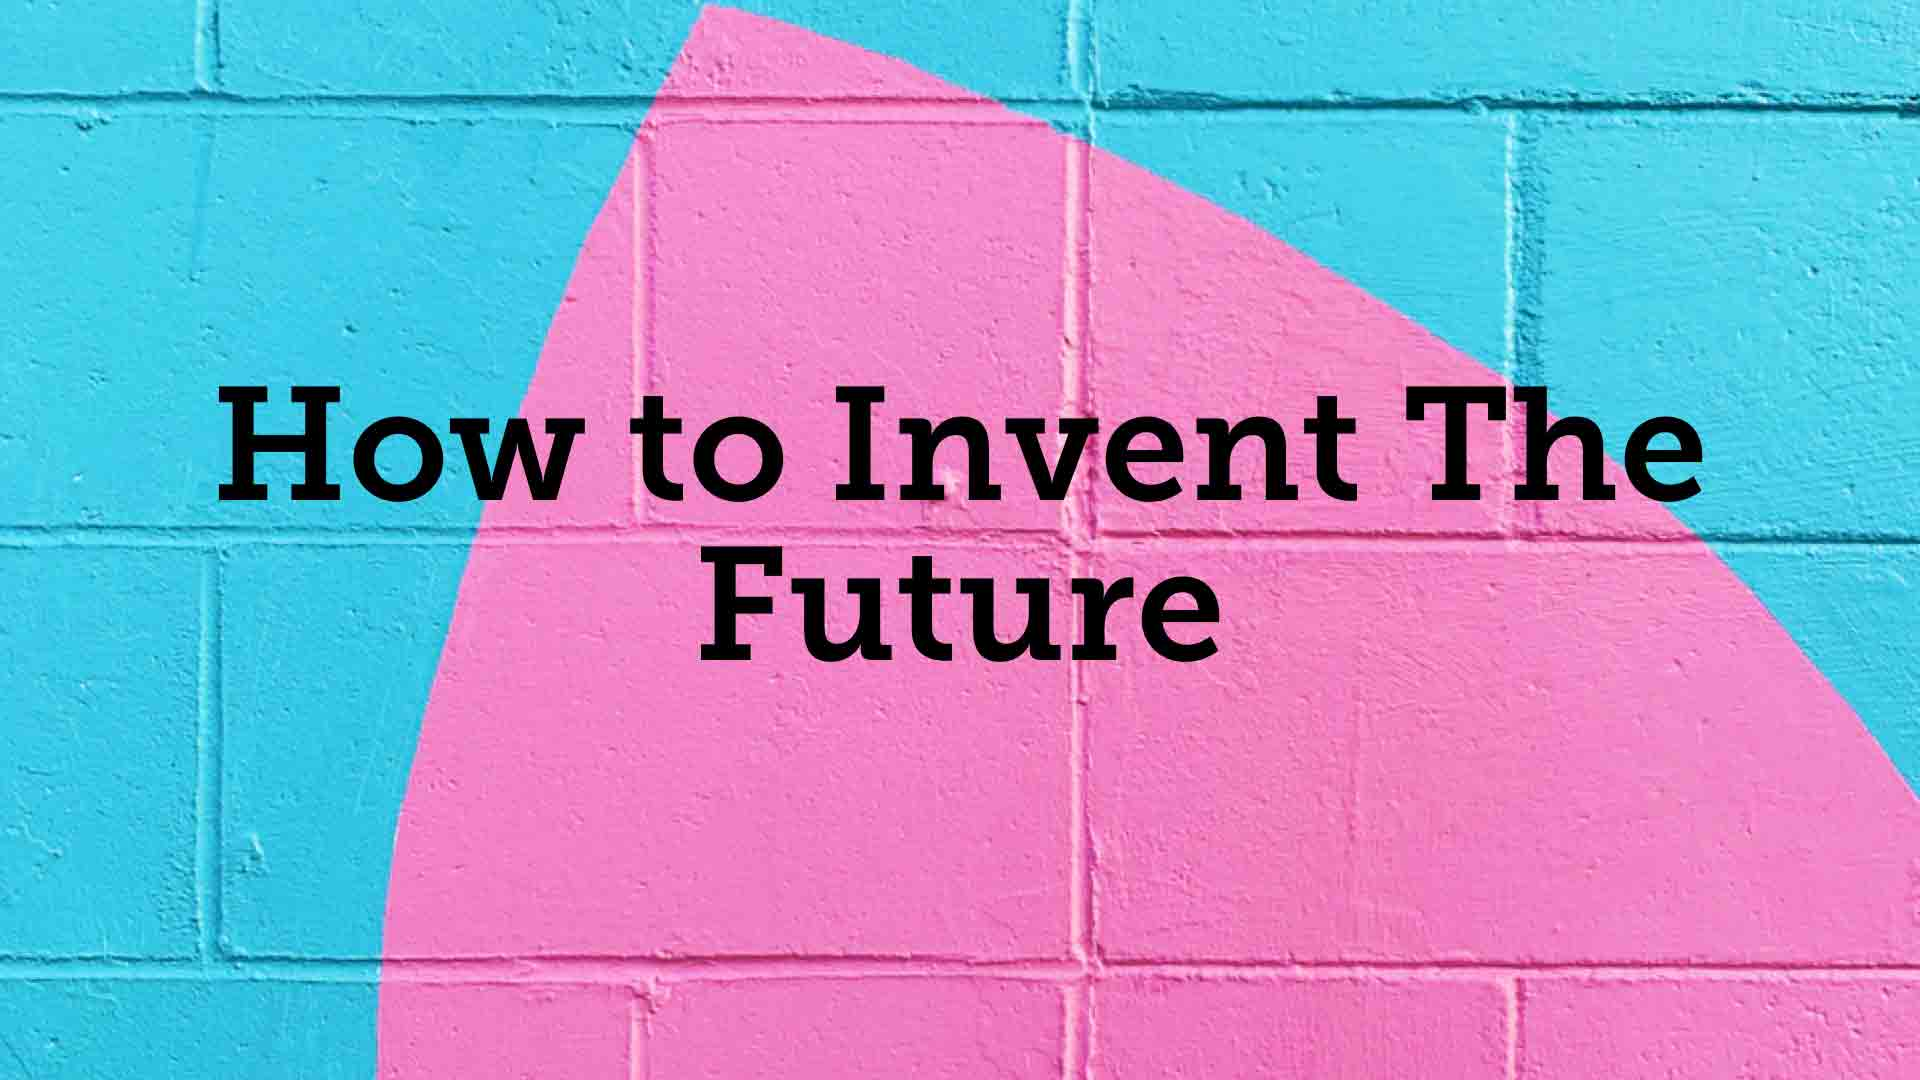 How to Invent The Future